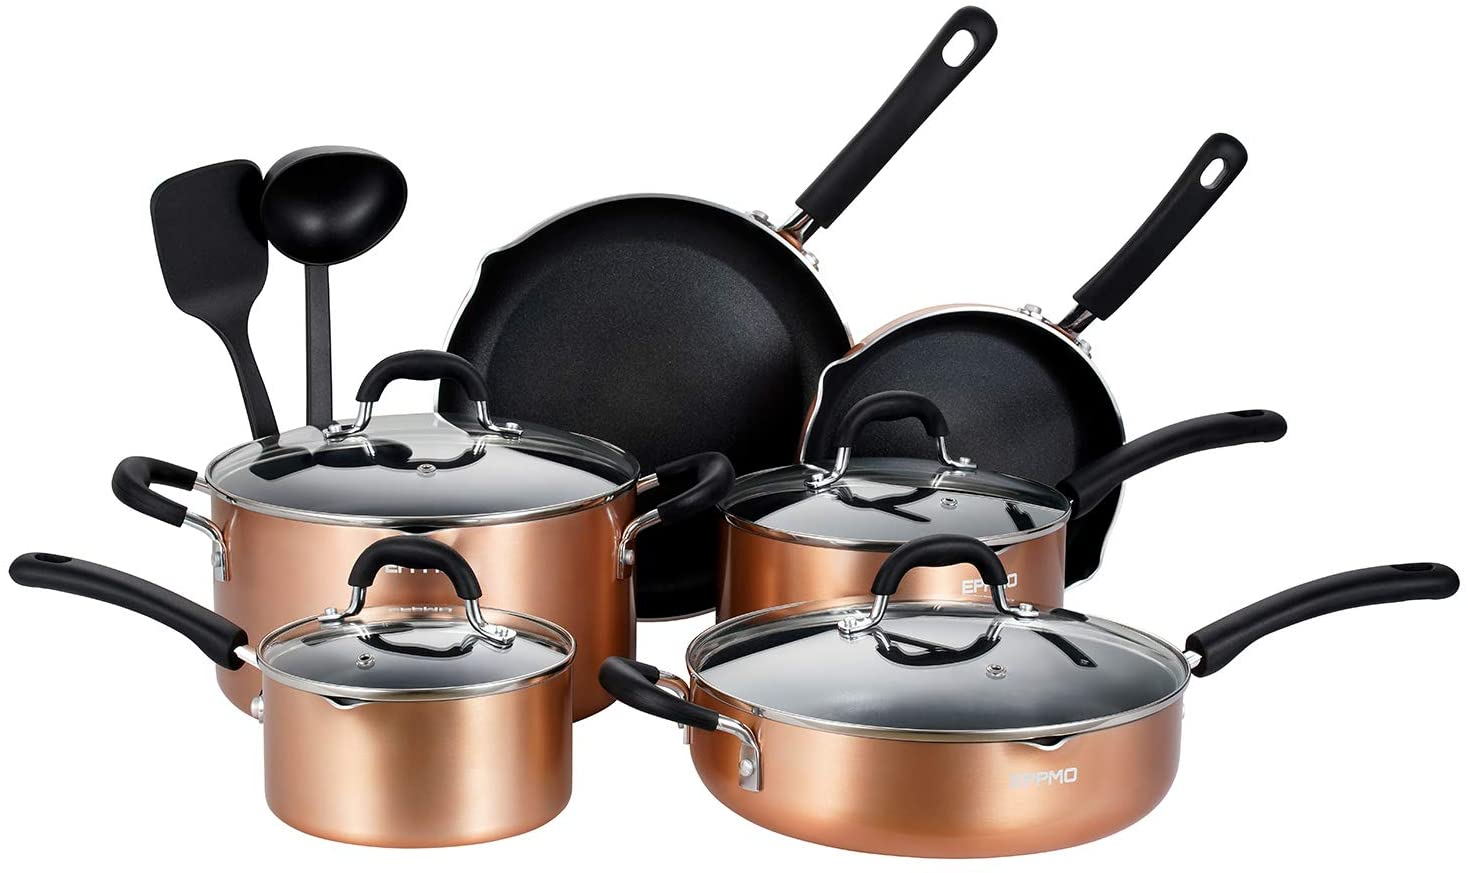 EPPMO 12 Piece Nonstick Cookware Set, Aluminum Pots and Pans, Dishwasher and Oven Safe